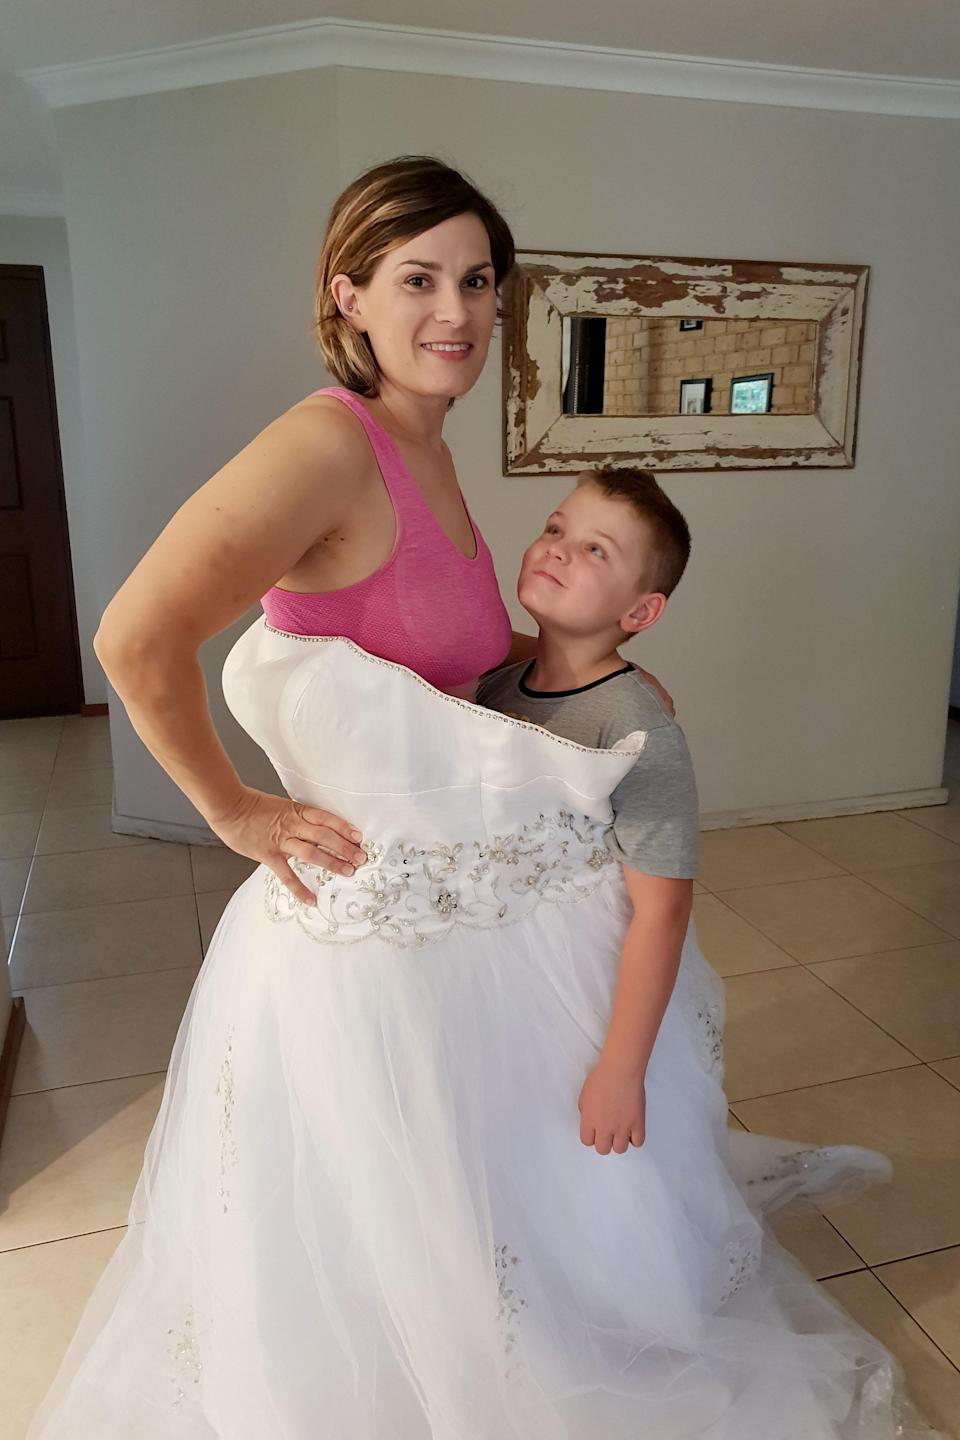 Belinda Brodie pictured with her son wearing the wedding dress [Photo: Caters]